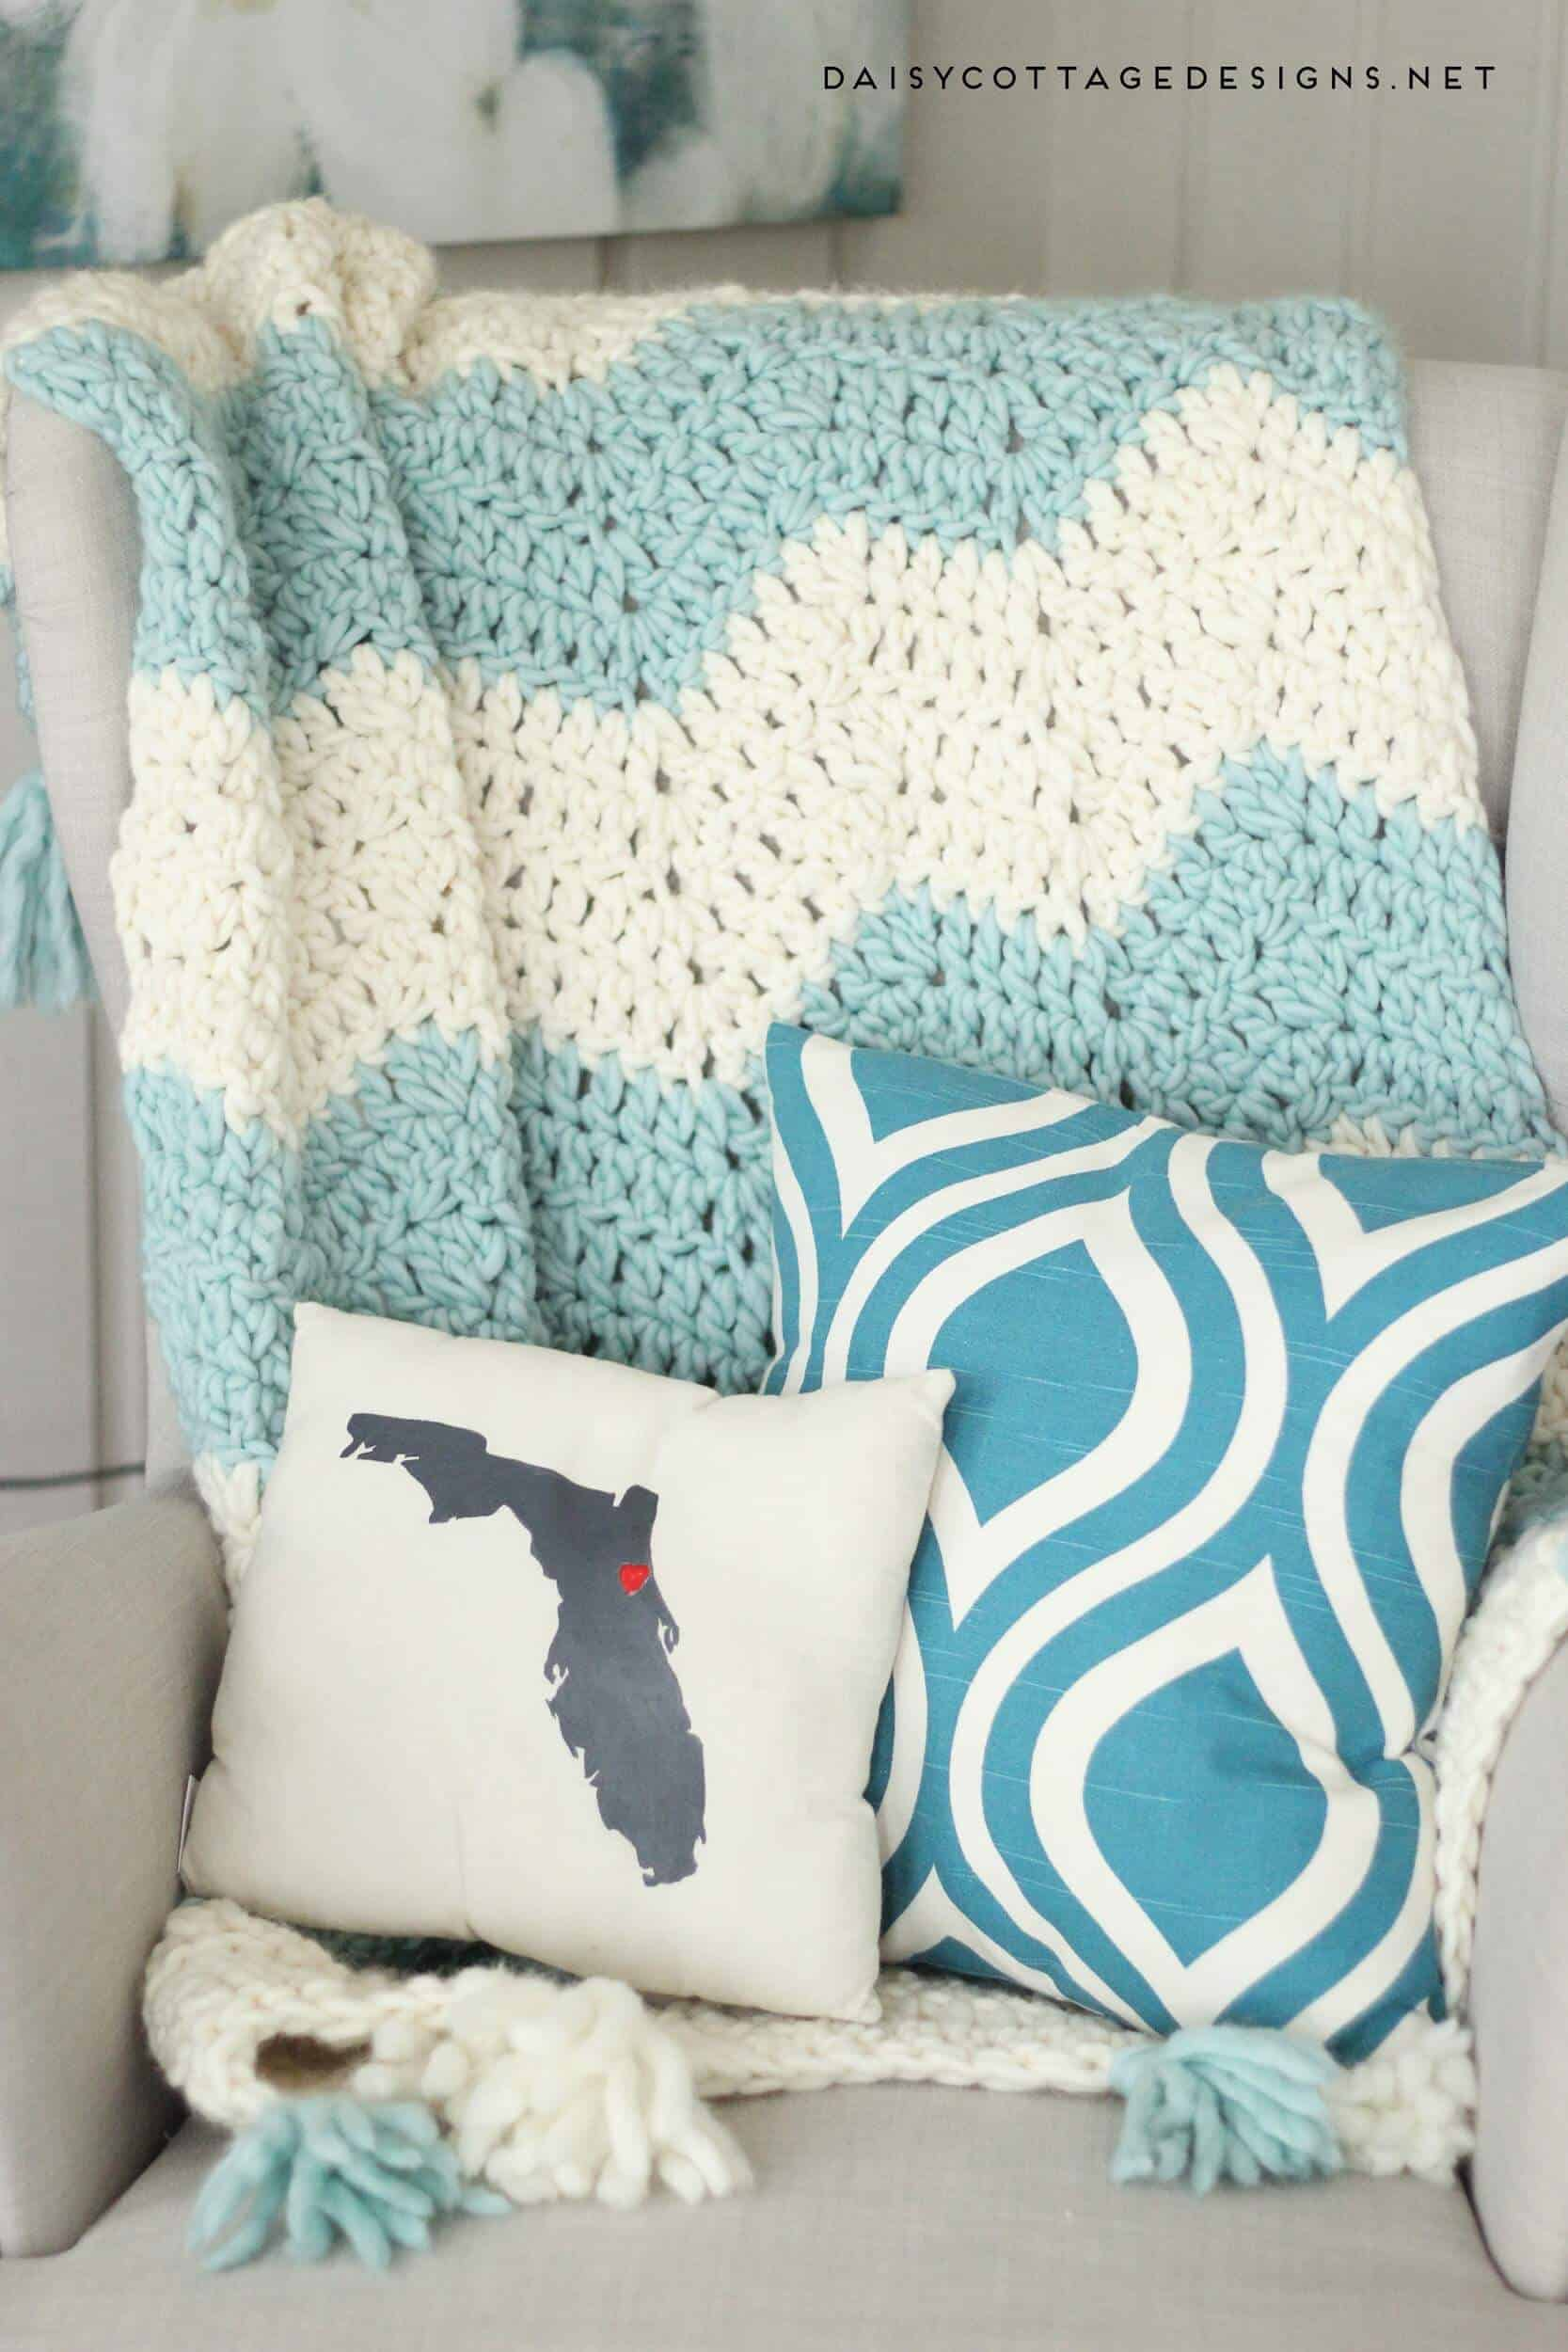 Chunky Chevron Crochet Blanket with Tassels. Beautiful and easy to make. Get a discount on this beautiful Yarn, too! | chunky chevron blanket, quick crochet blanket, bulky yarn patterns, Daisy Cottage Designs